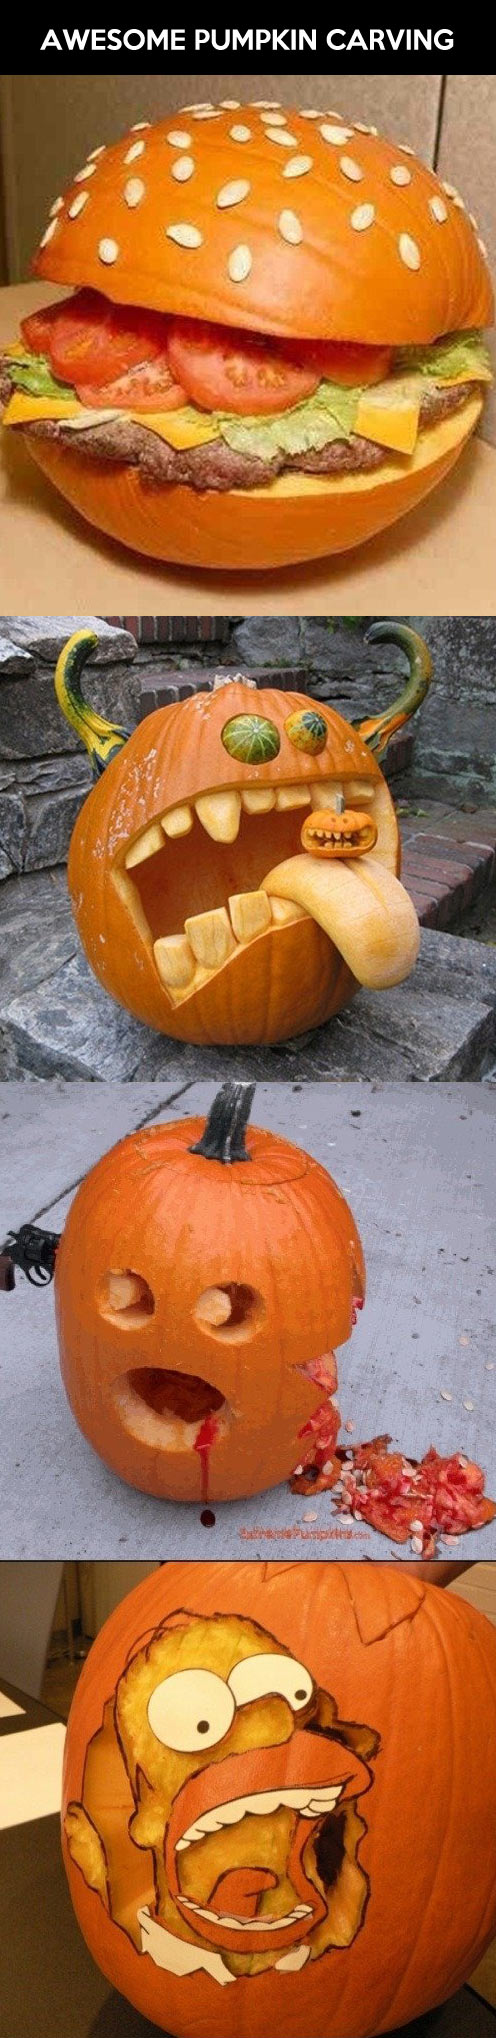 funny-picture-pumpkin-halloween-carving-compilation